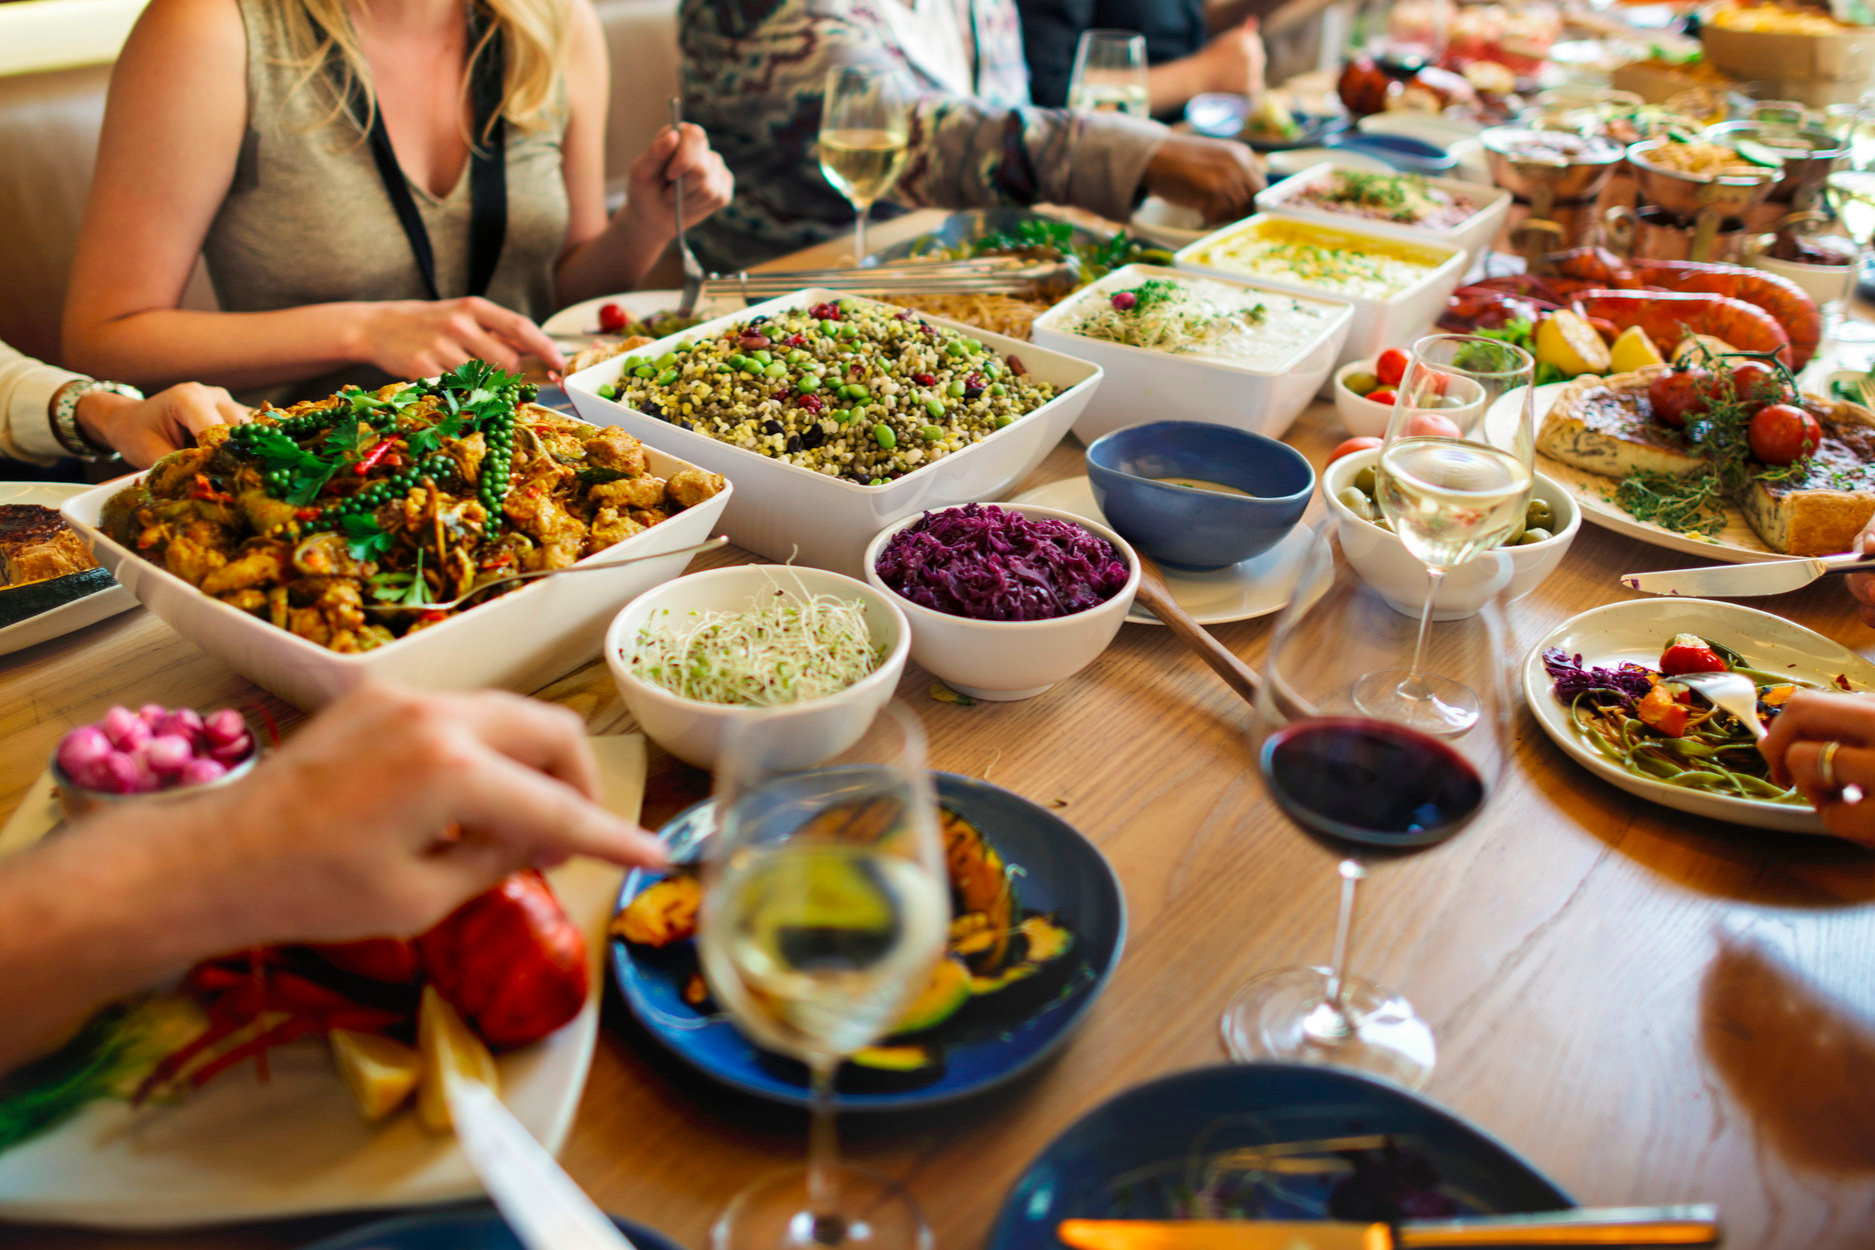 buffet-dinner-dining-food-celebration-party-concept-66884196+copy.jpg